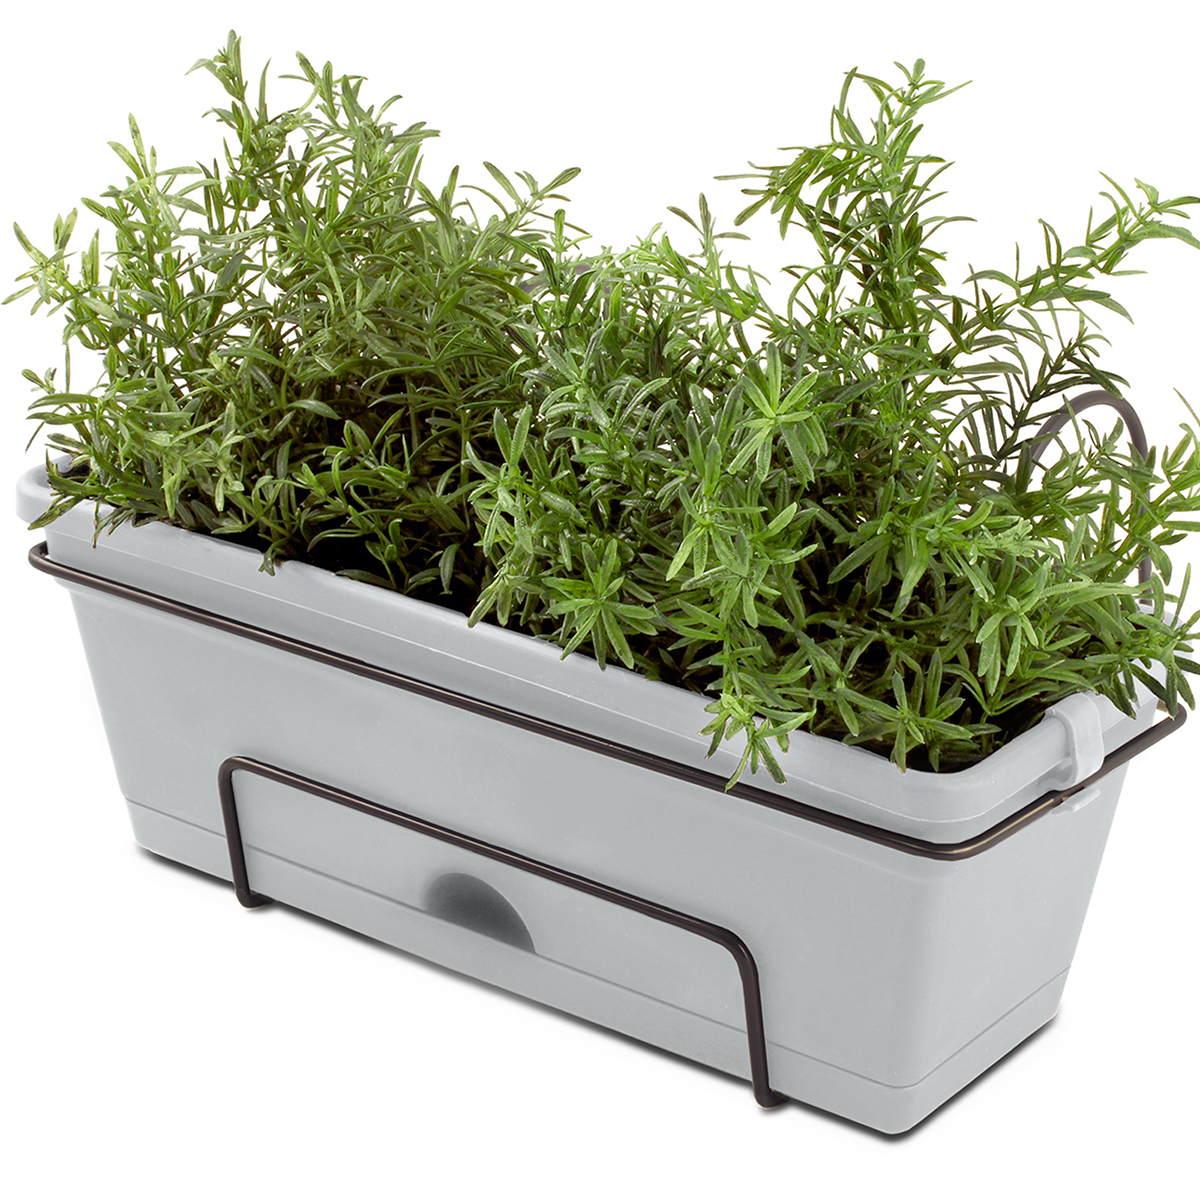 18691 - Herb Planter with herbs Concrete Grey